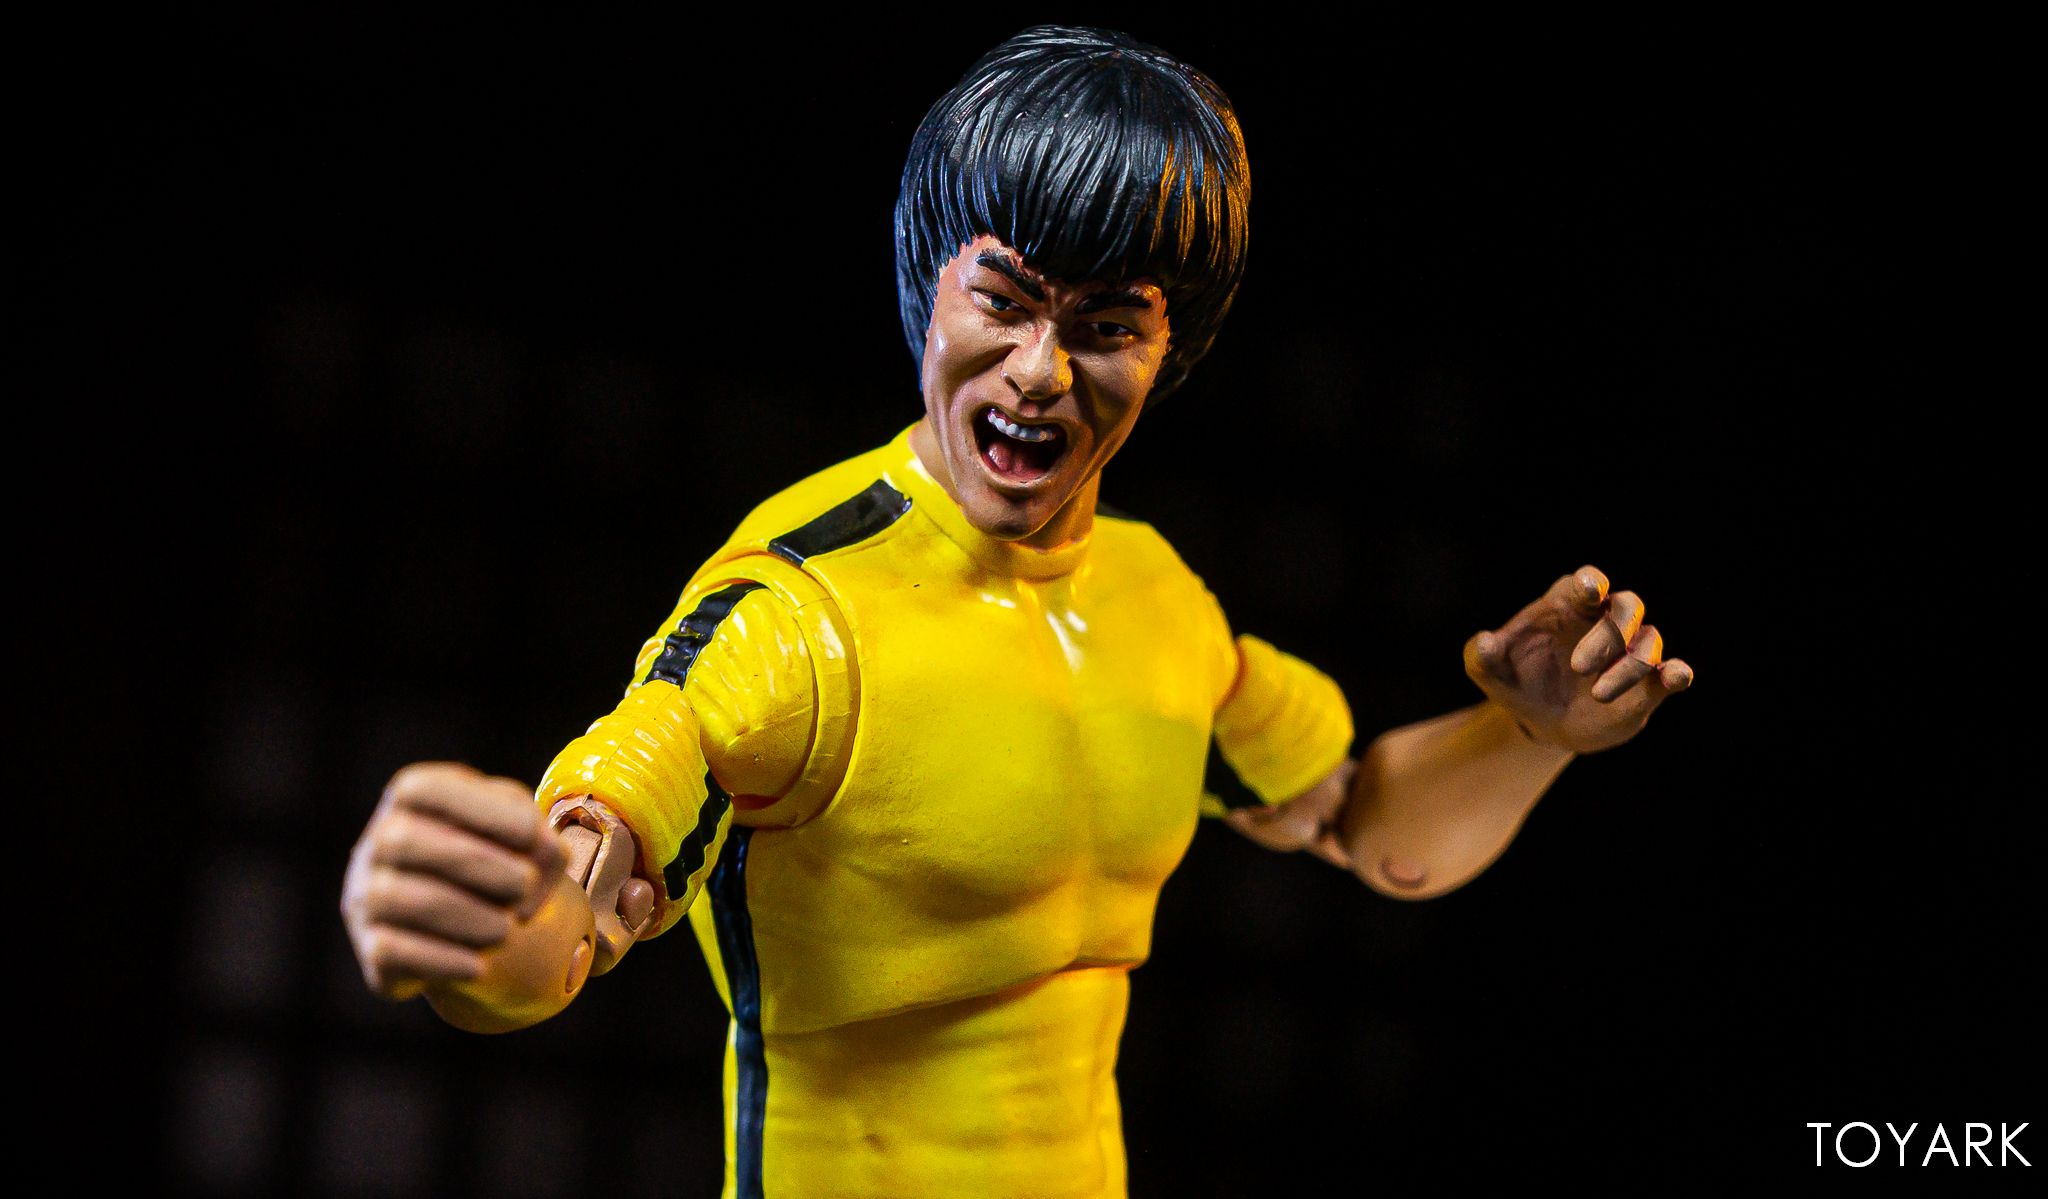 https://news.toyark.com/wp-content/uploads/sites/4/2019/07/DST-Select-Bruce-Lee-008.jpg